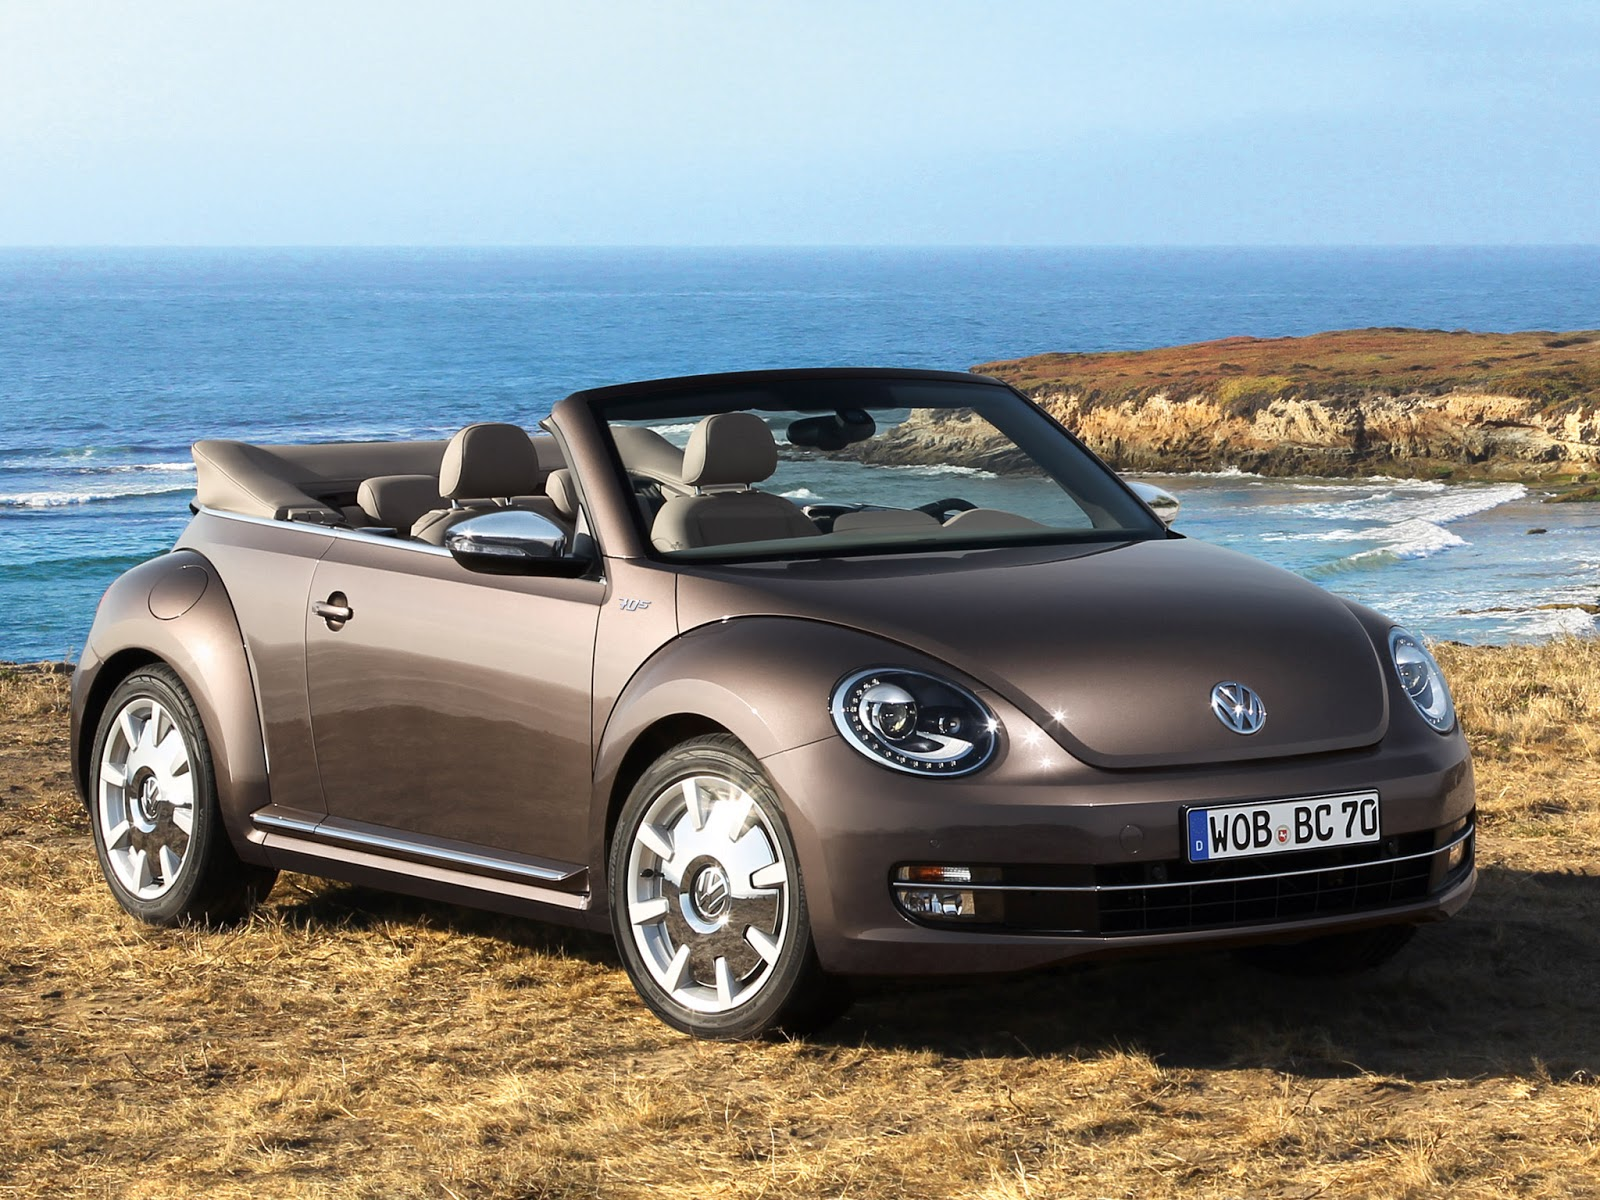 new car review 2013 volkswagen beetle convertible 70s. Black Bedroom Furniture Sets. Home Design Ideas